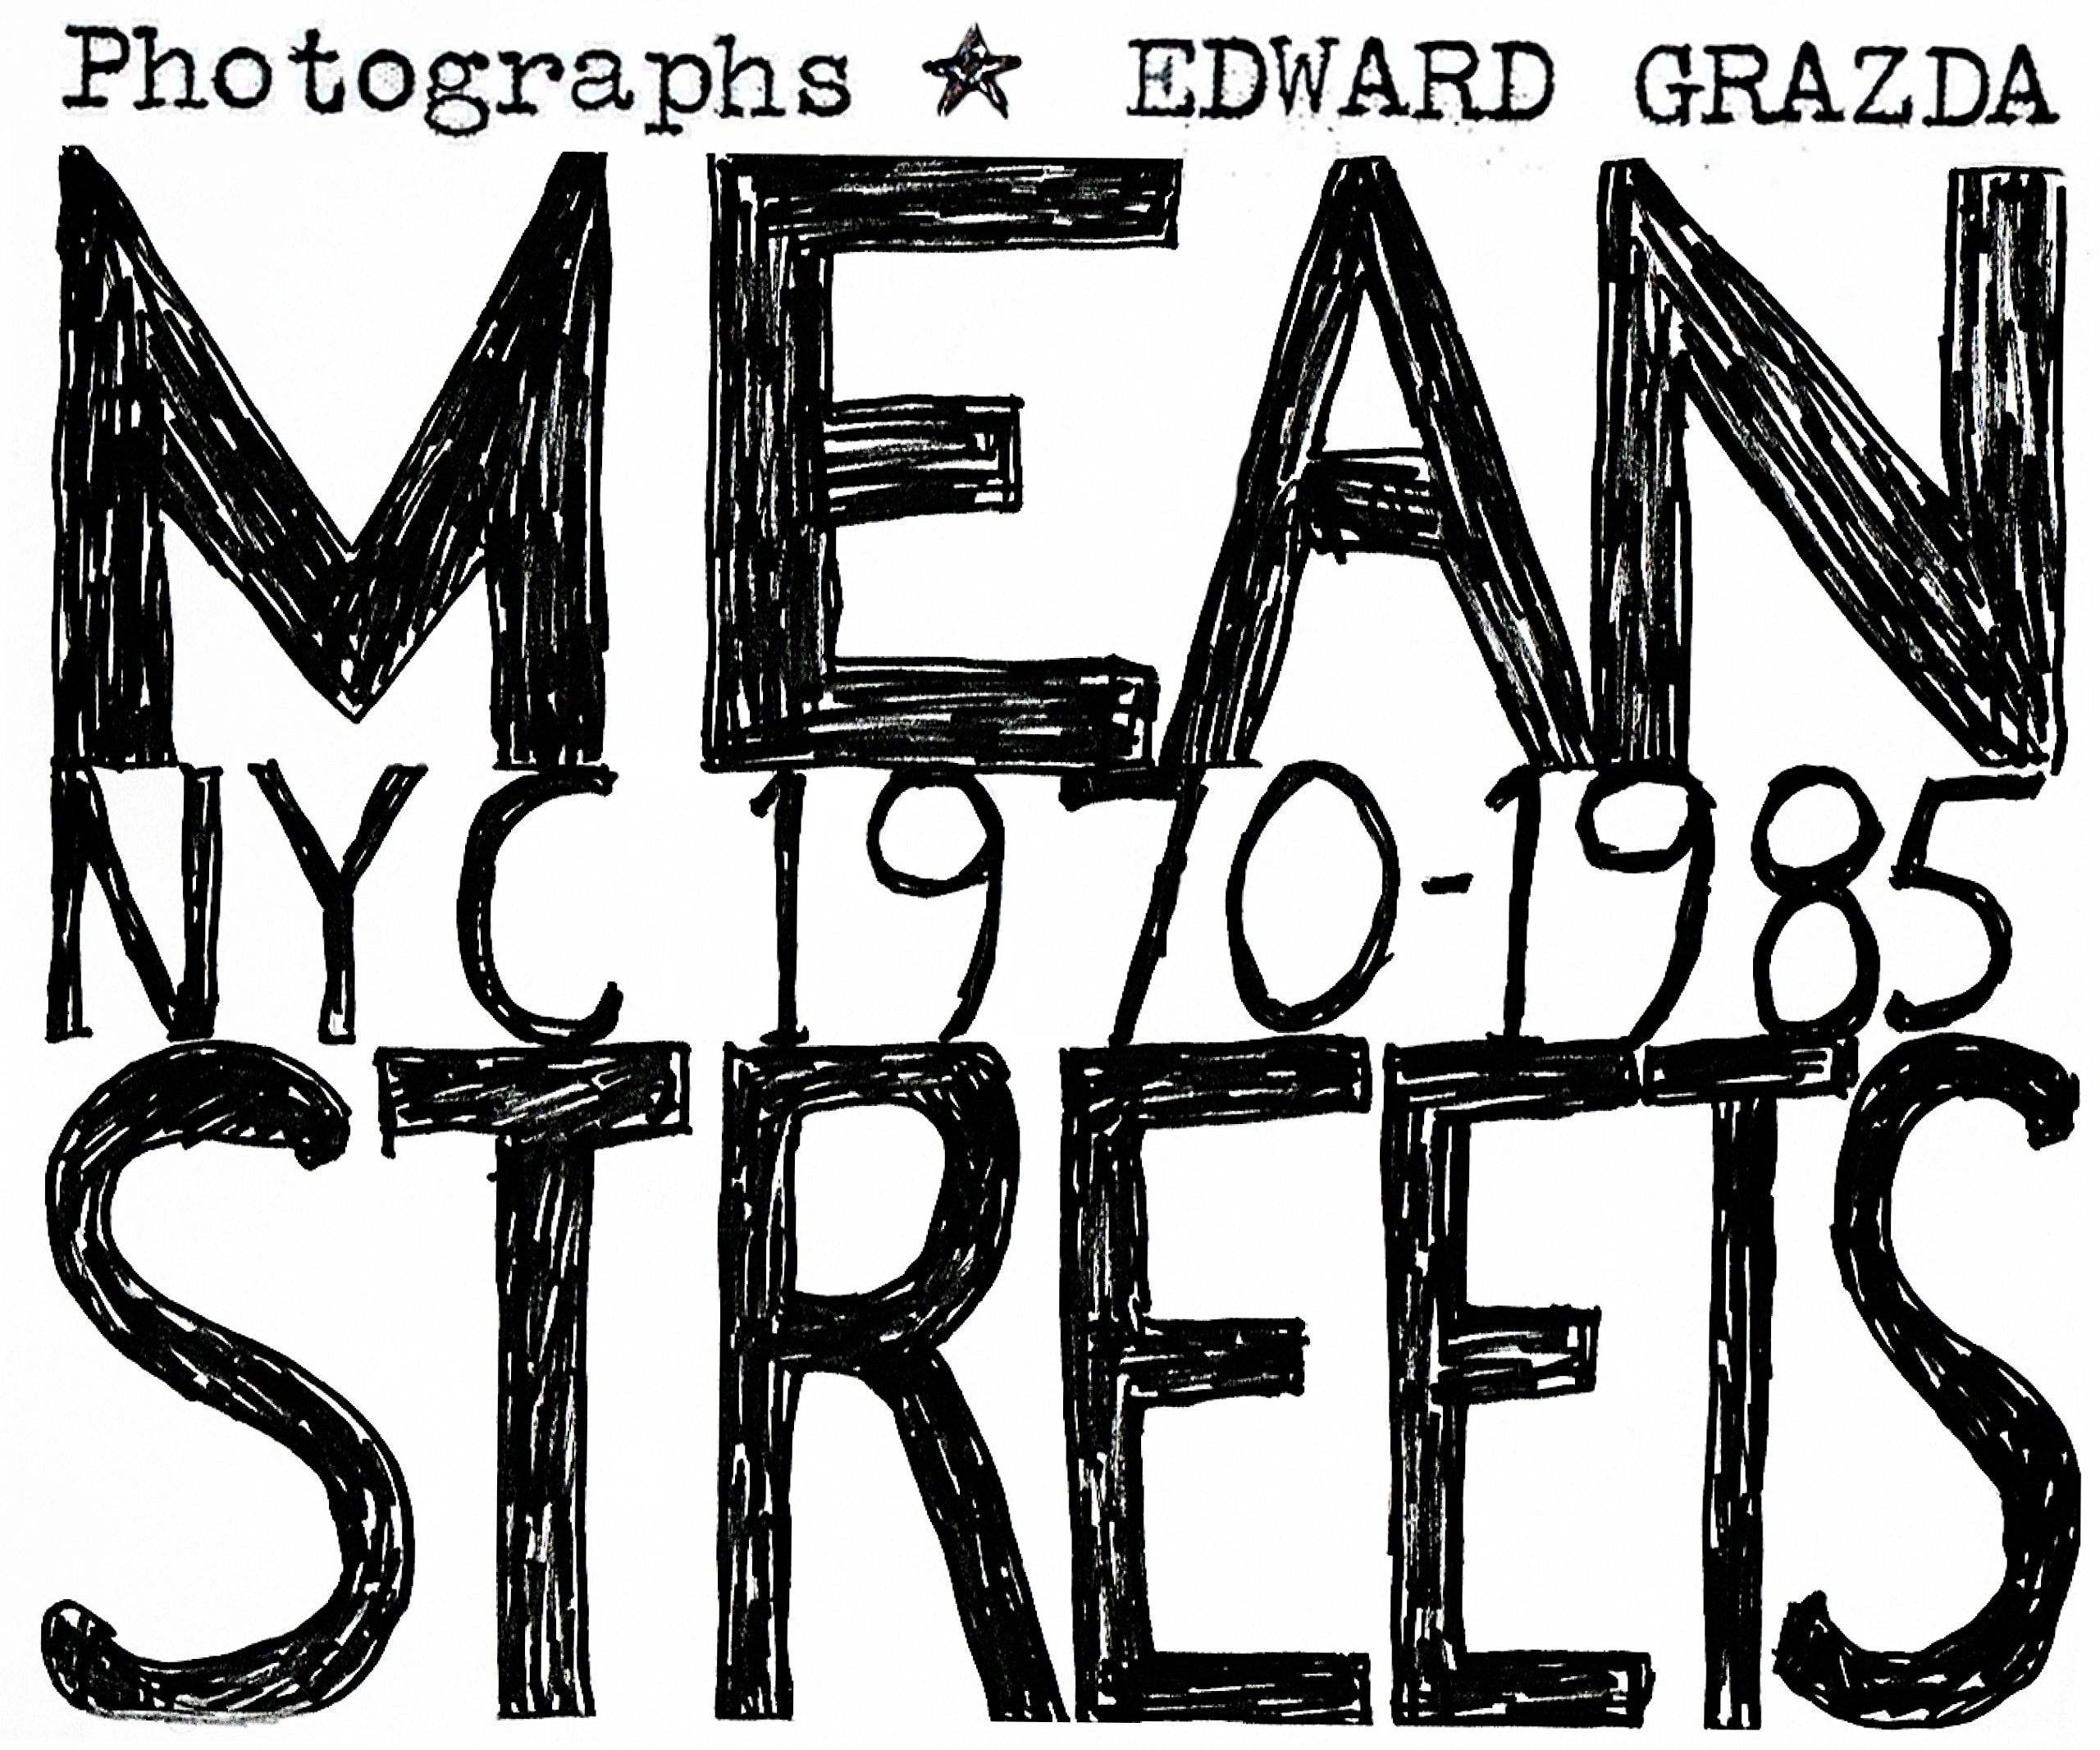 amazon mean streets nyc 1970 1985 9781576878439 edward 1970s Electronic Games follow the author